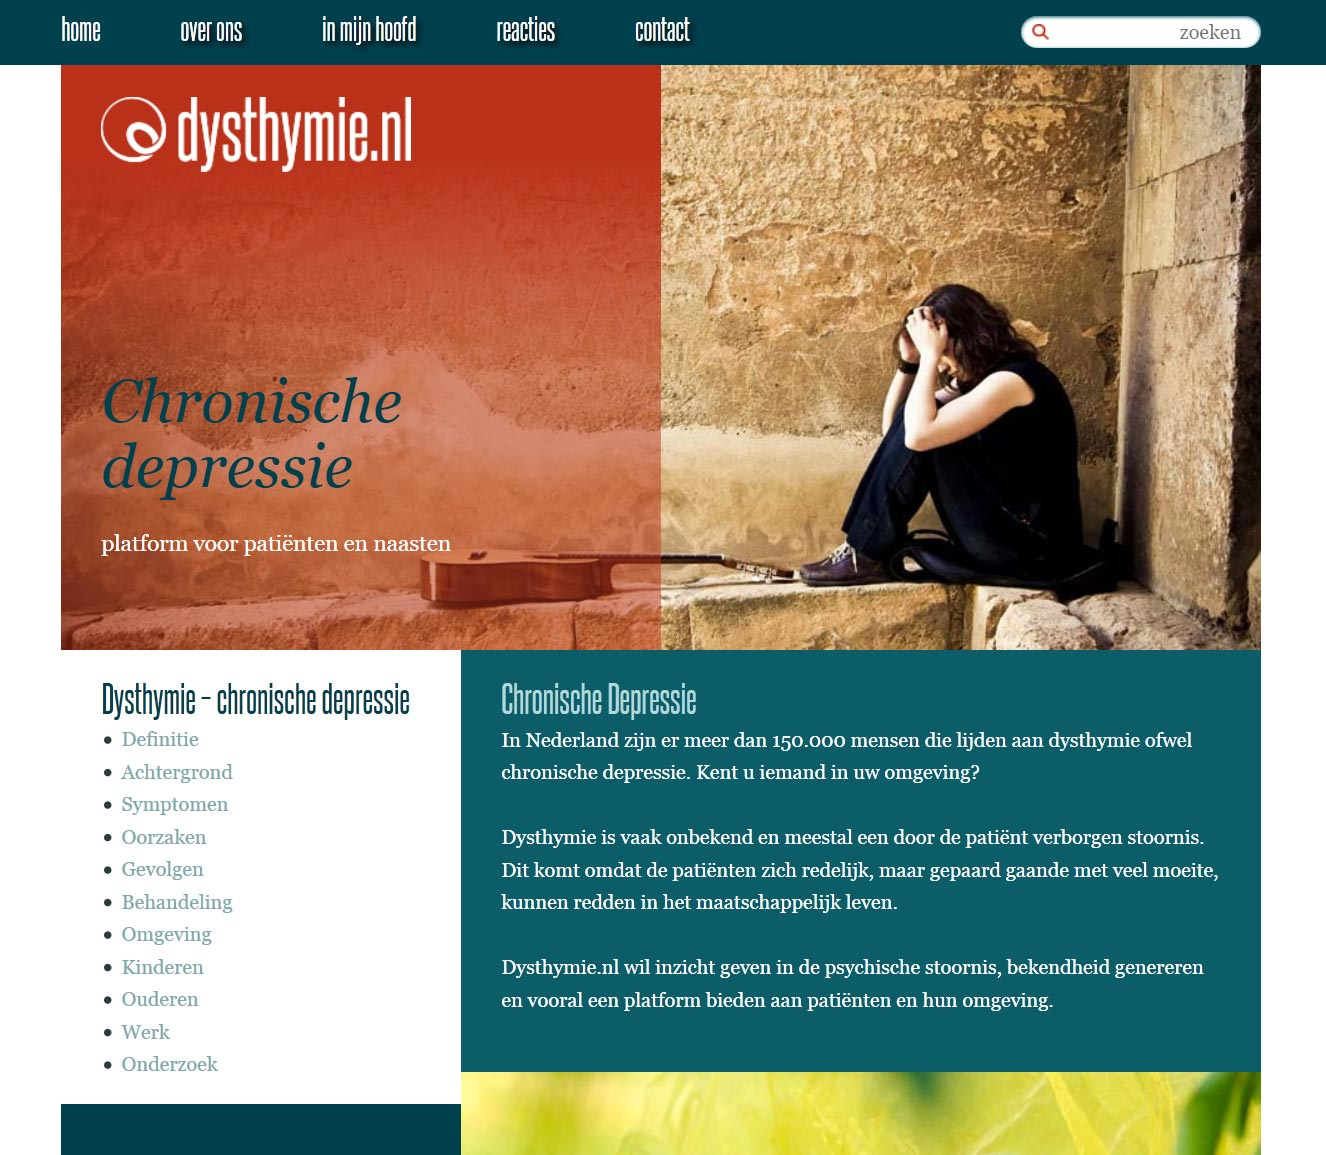 WordPress website dysthymie.nl